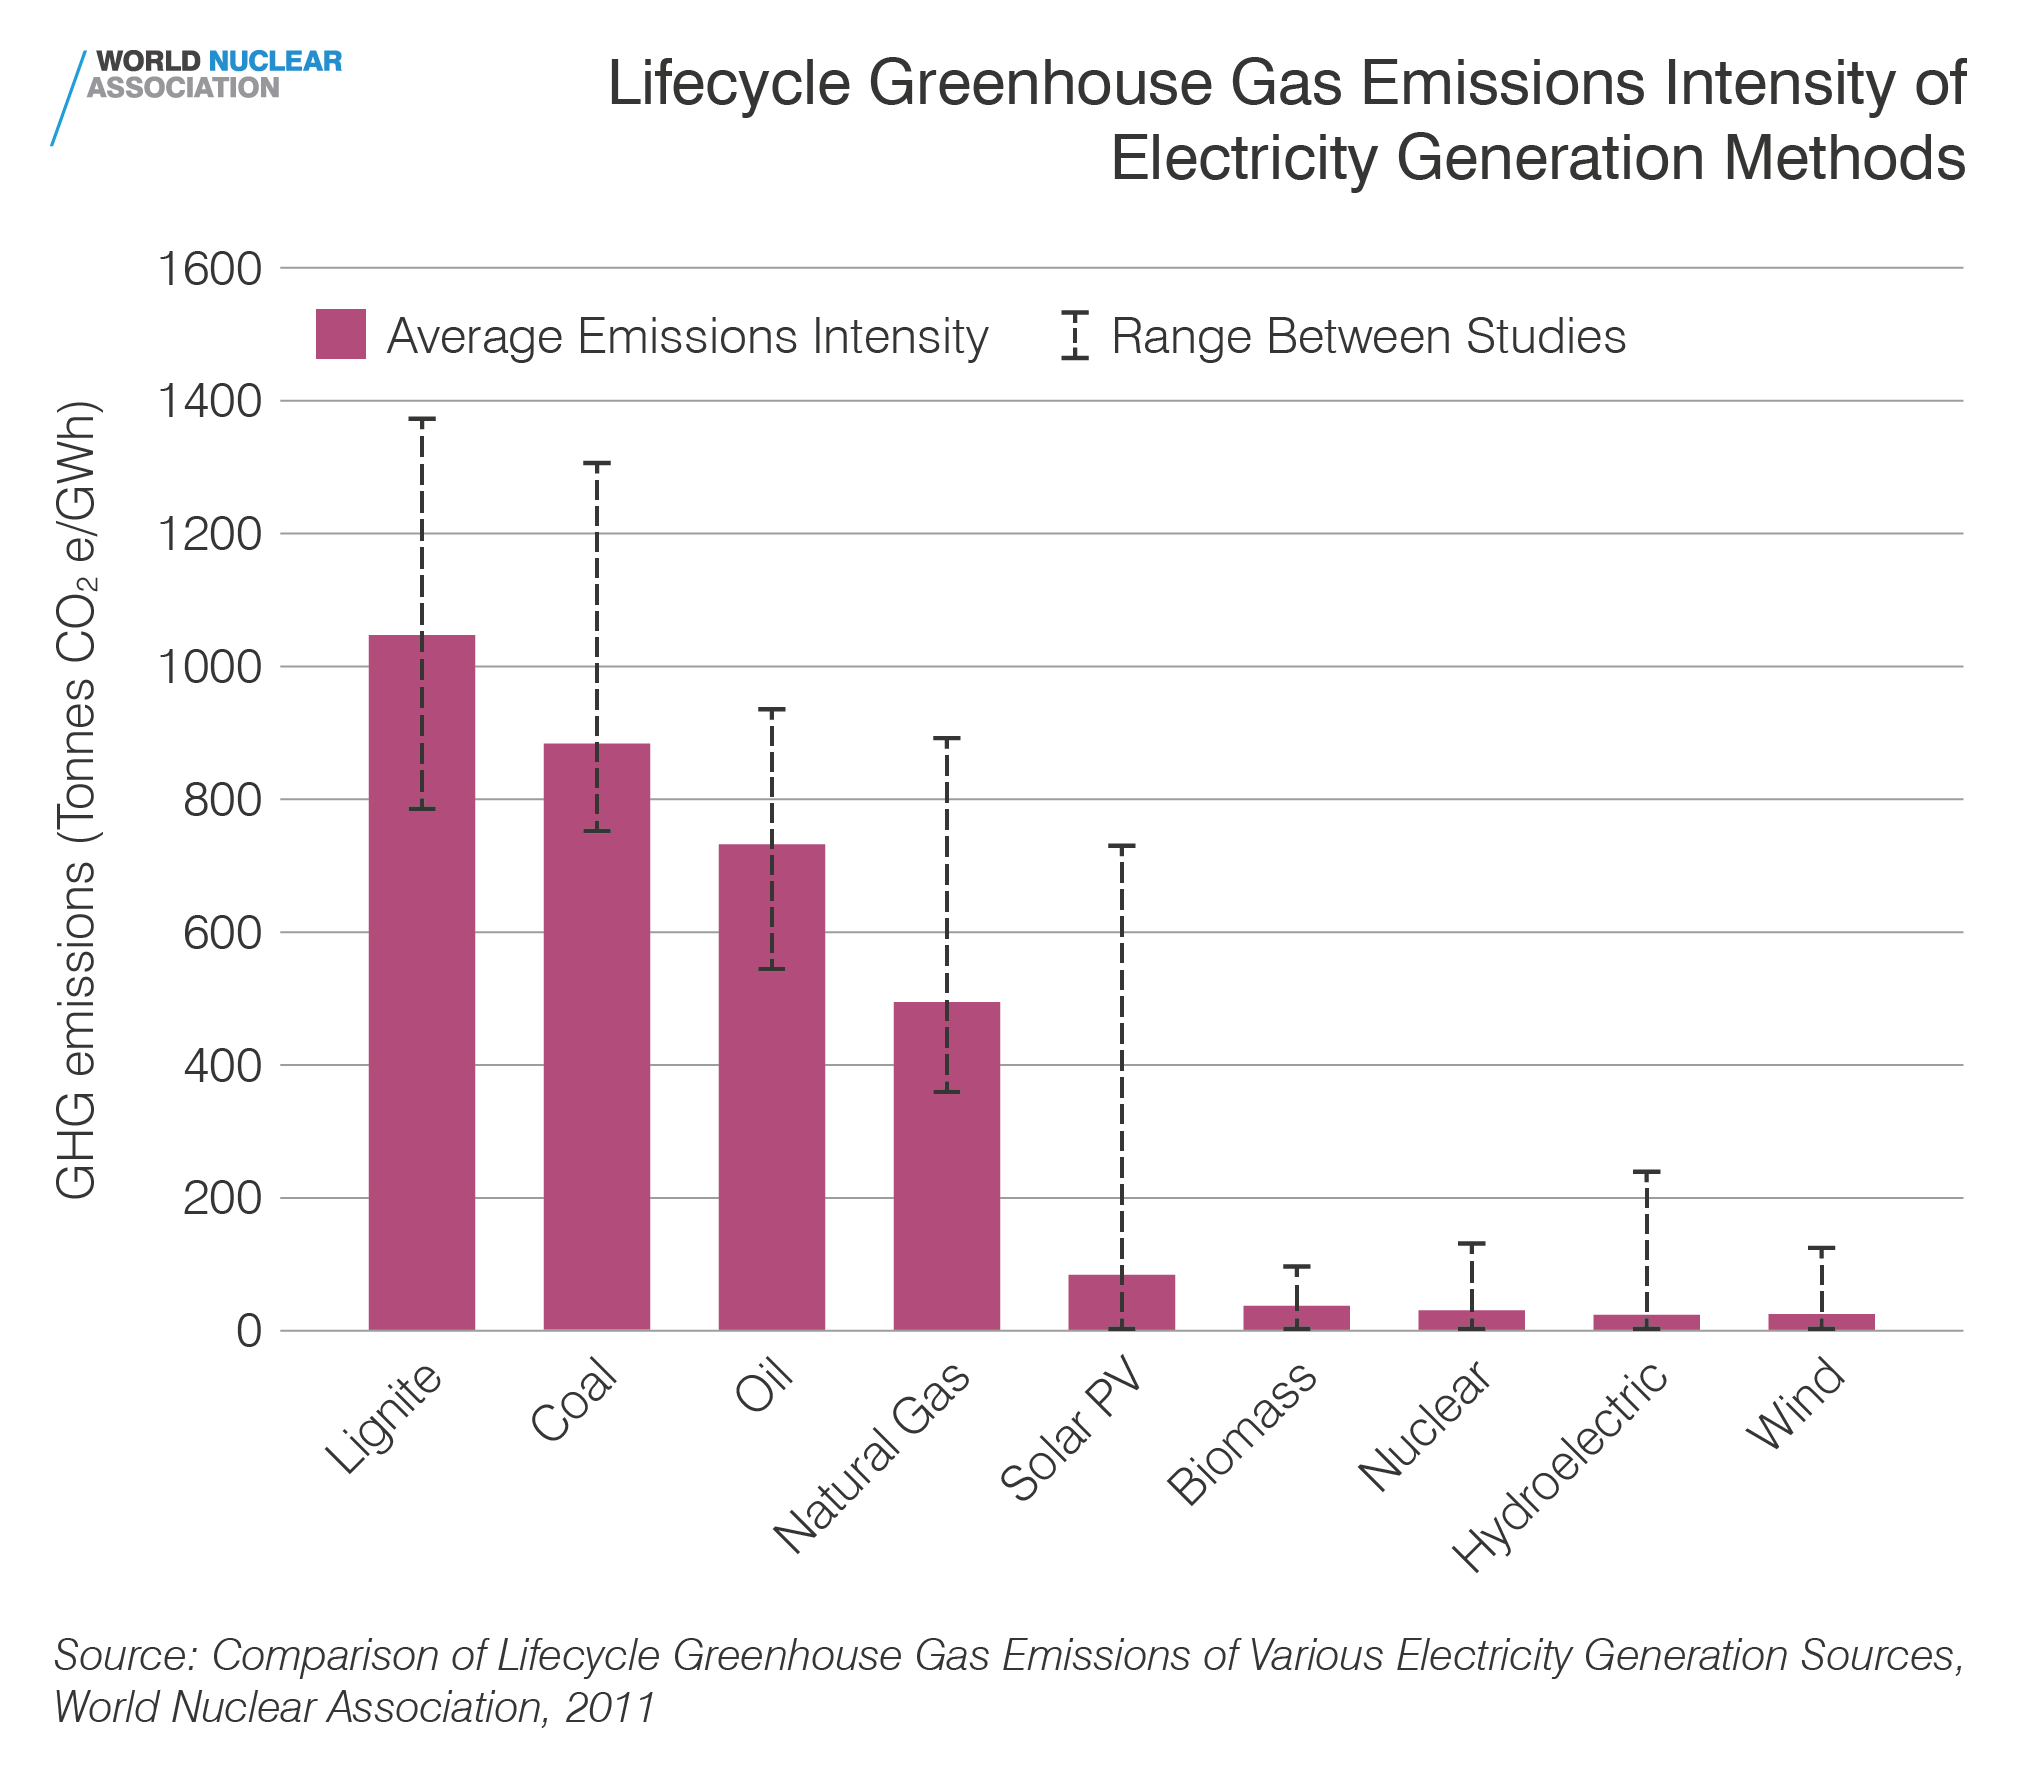 Lifecycle greenhouse gas emissions intensity of electricity generation methods